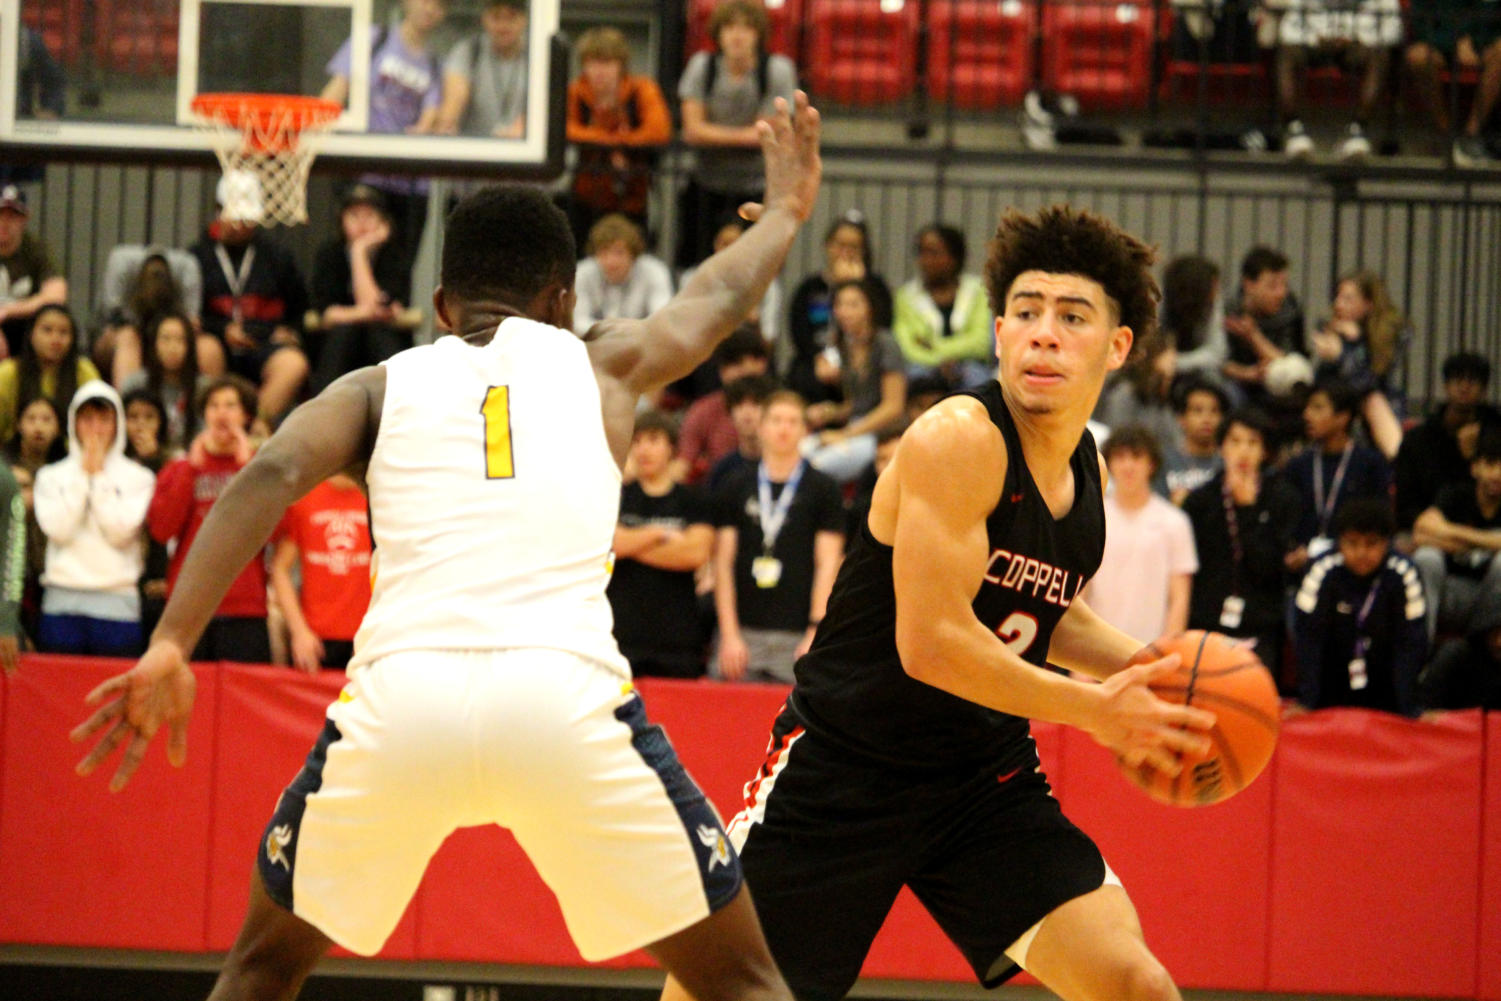 Coppell senior guard Brandon Taylor prepares to bounce pass to his teammate against Lamar in the CHS Arena during the 2019 Classic Chevrolet Coppell Showcase on Thursday. The Cowboys play Rockwall in the main gym tomorrow at 12 p.m.